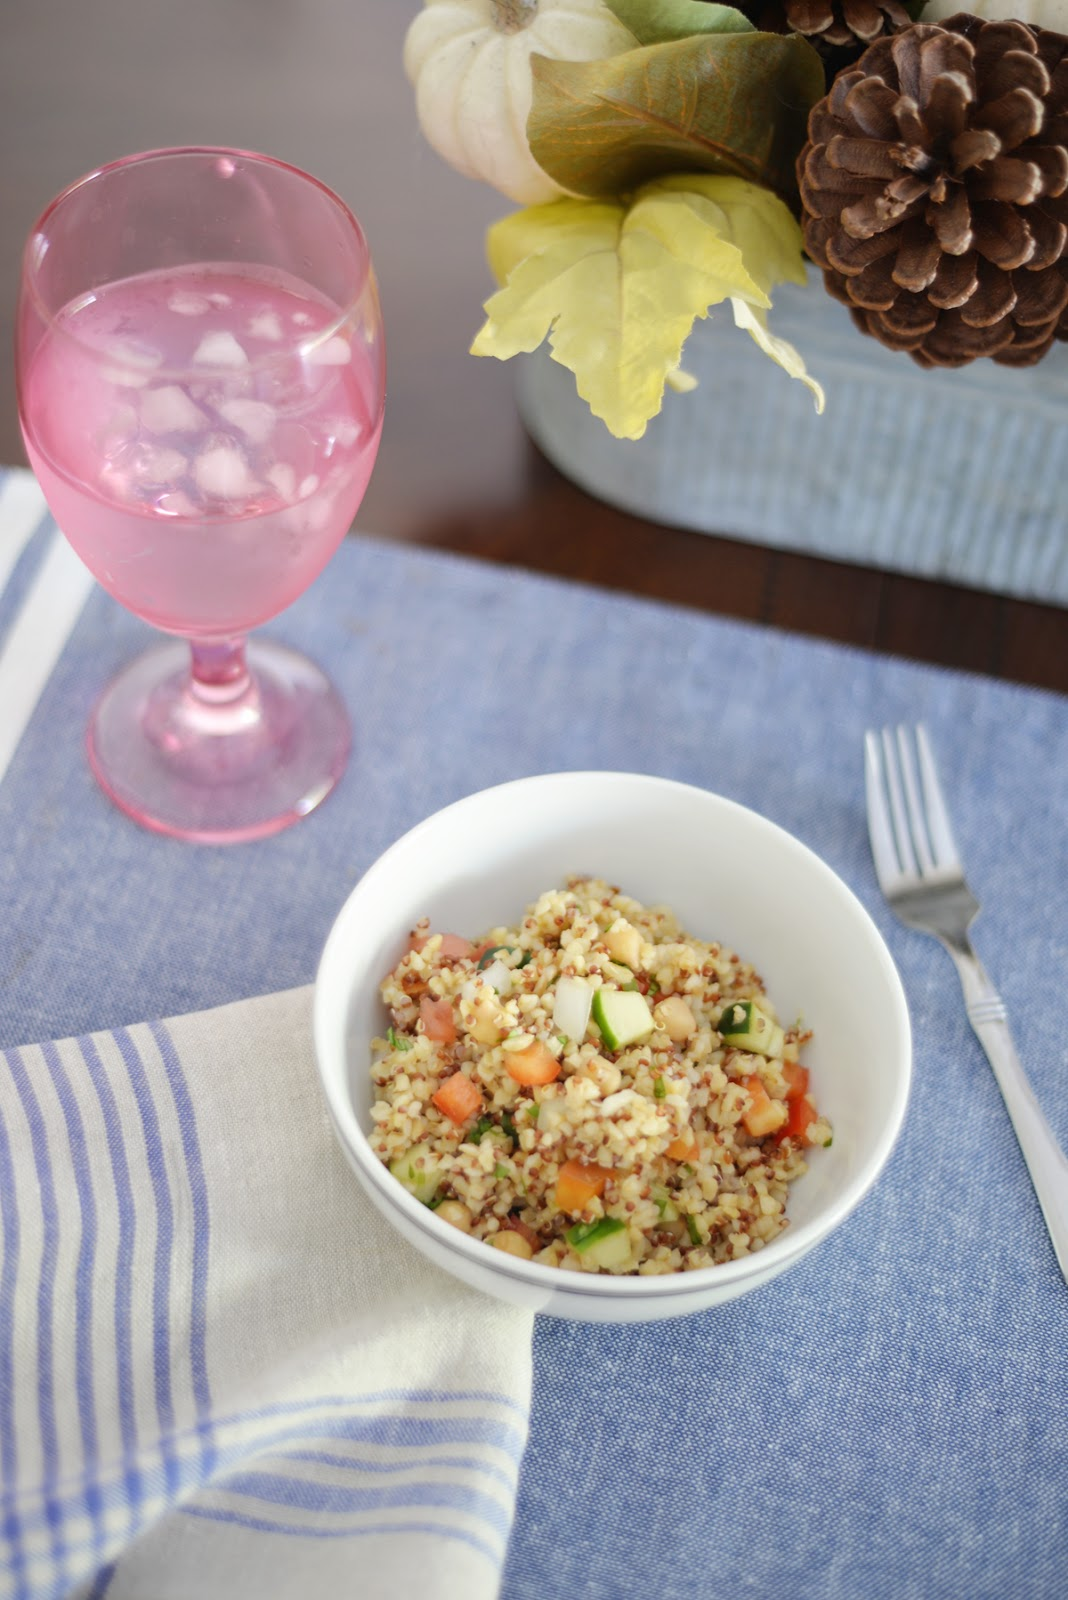 bulgur quinoa salad with lemon balsamic vinaigrette